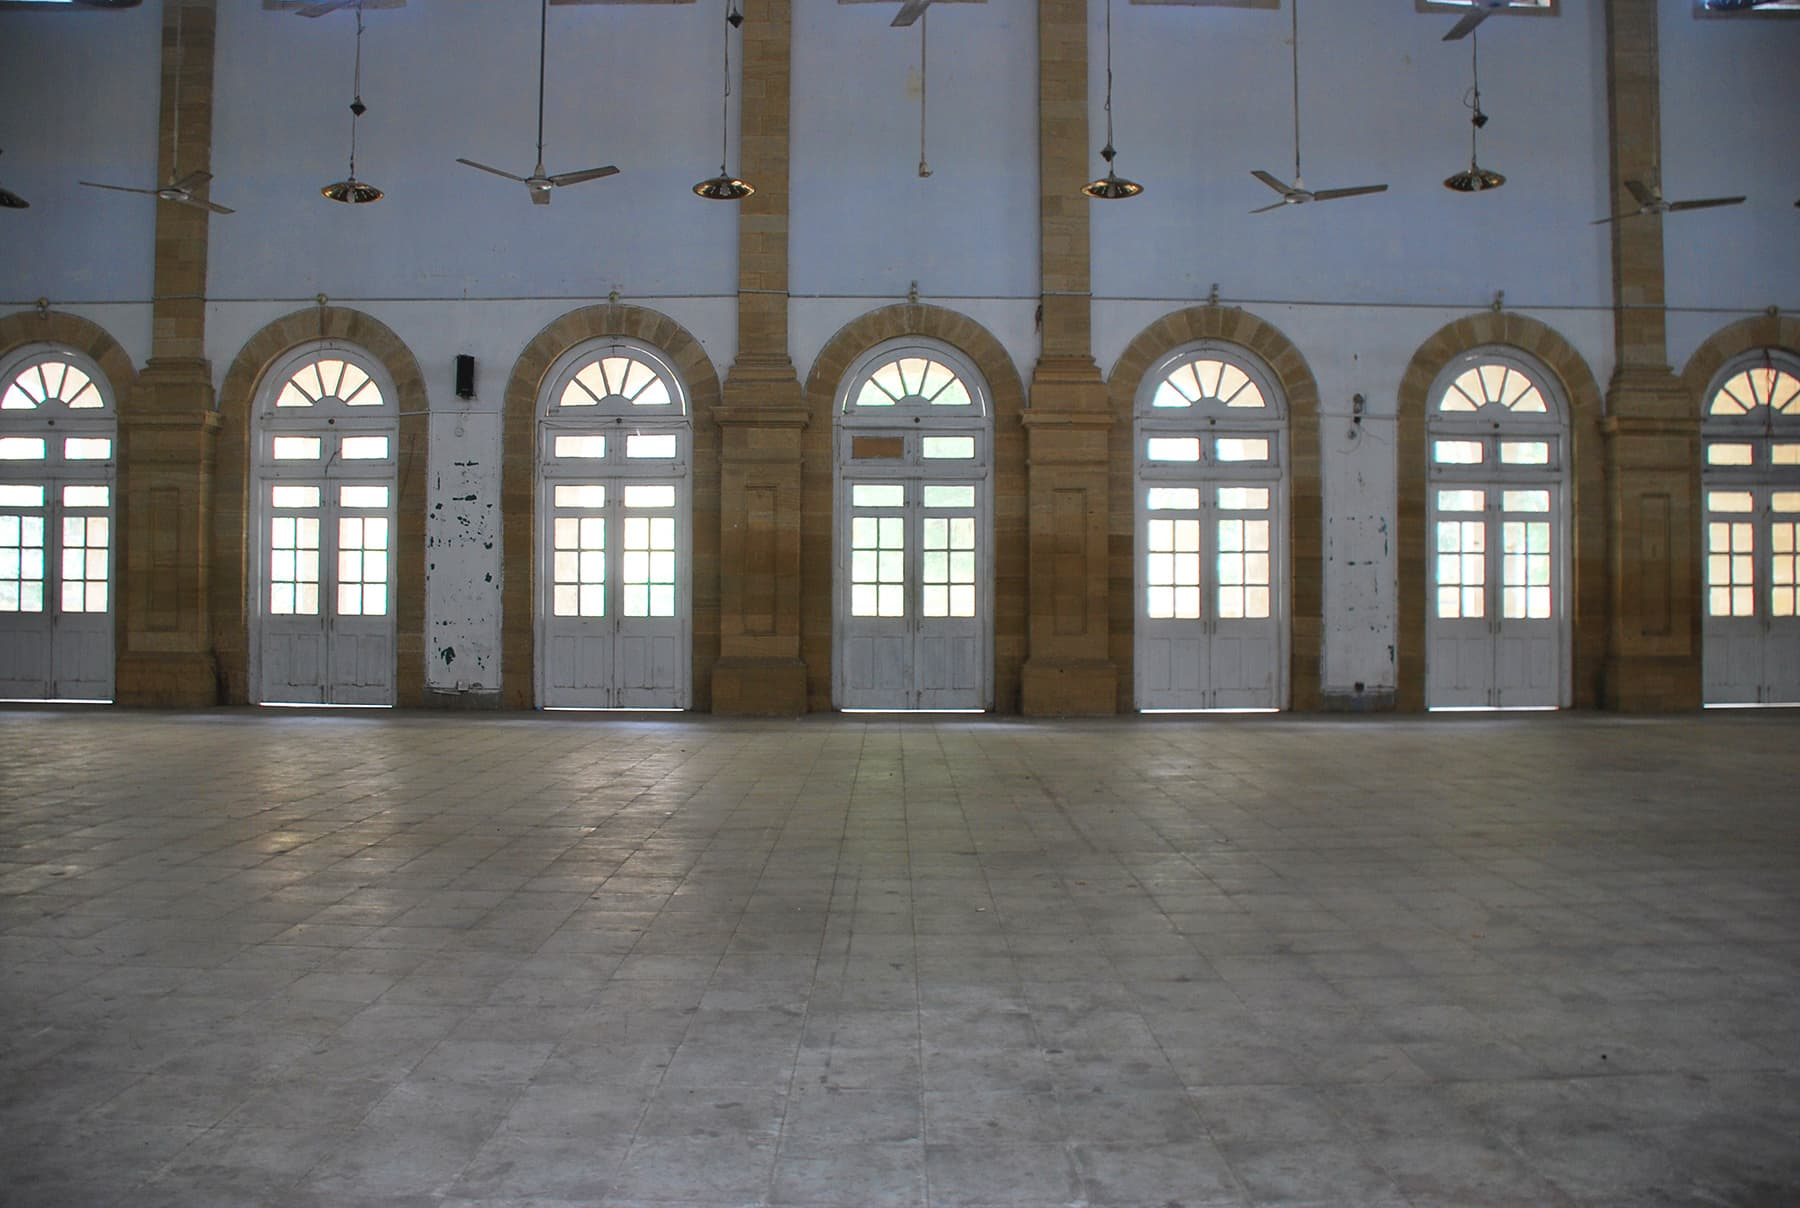 The inside hall is used for holding community events.